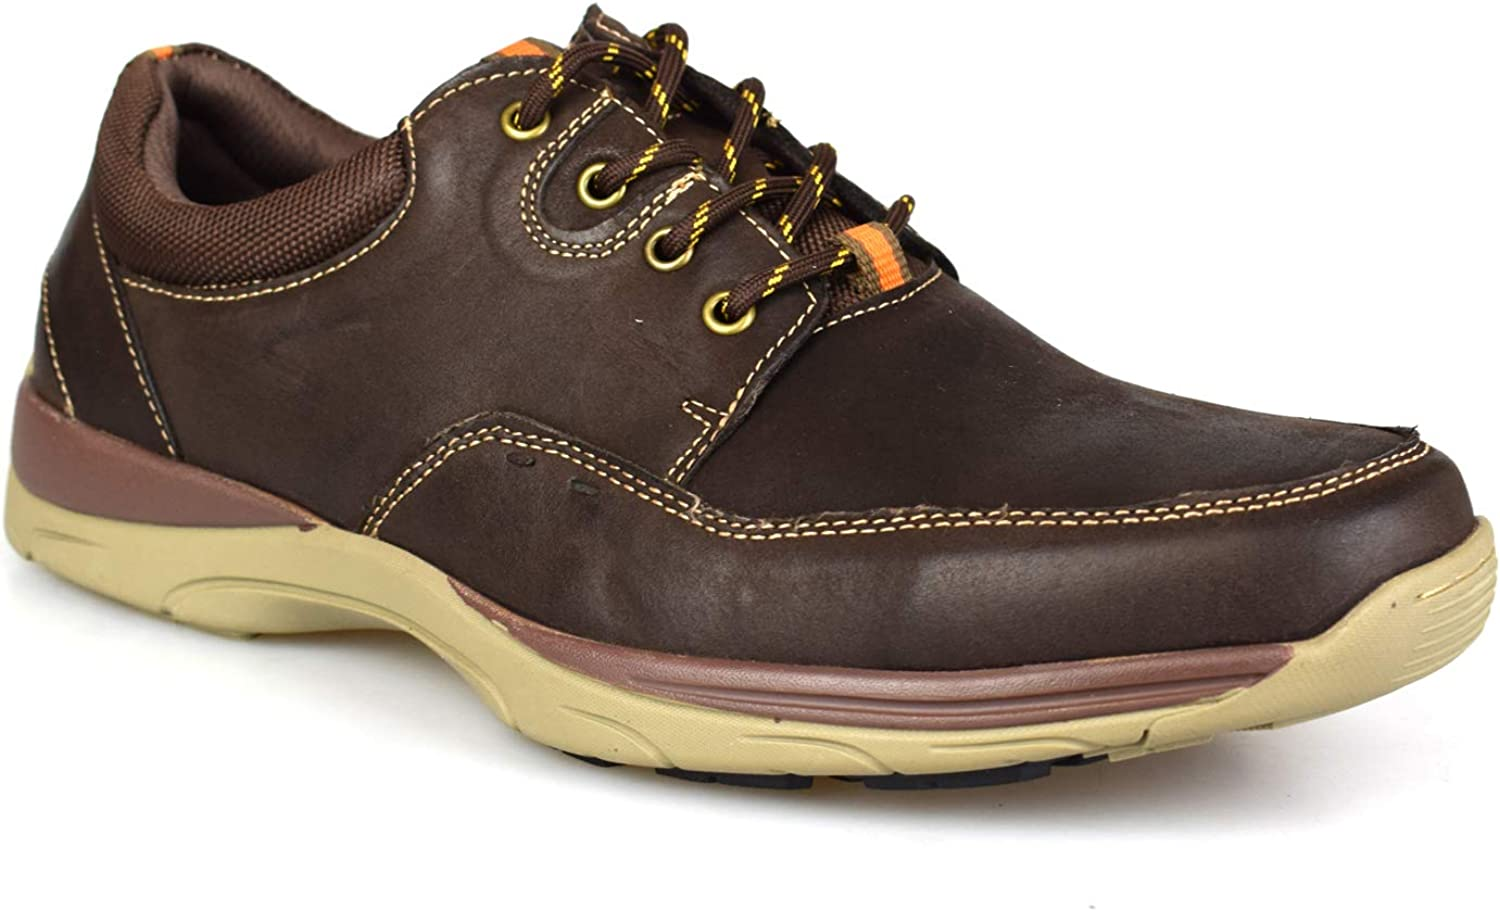 Catesby Mens Casual Brown Leather shoes BD171883